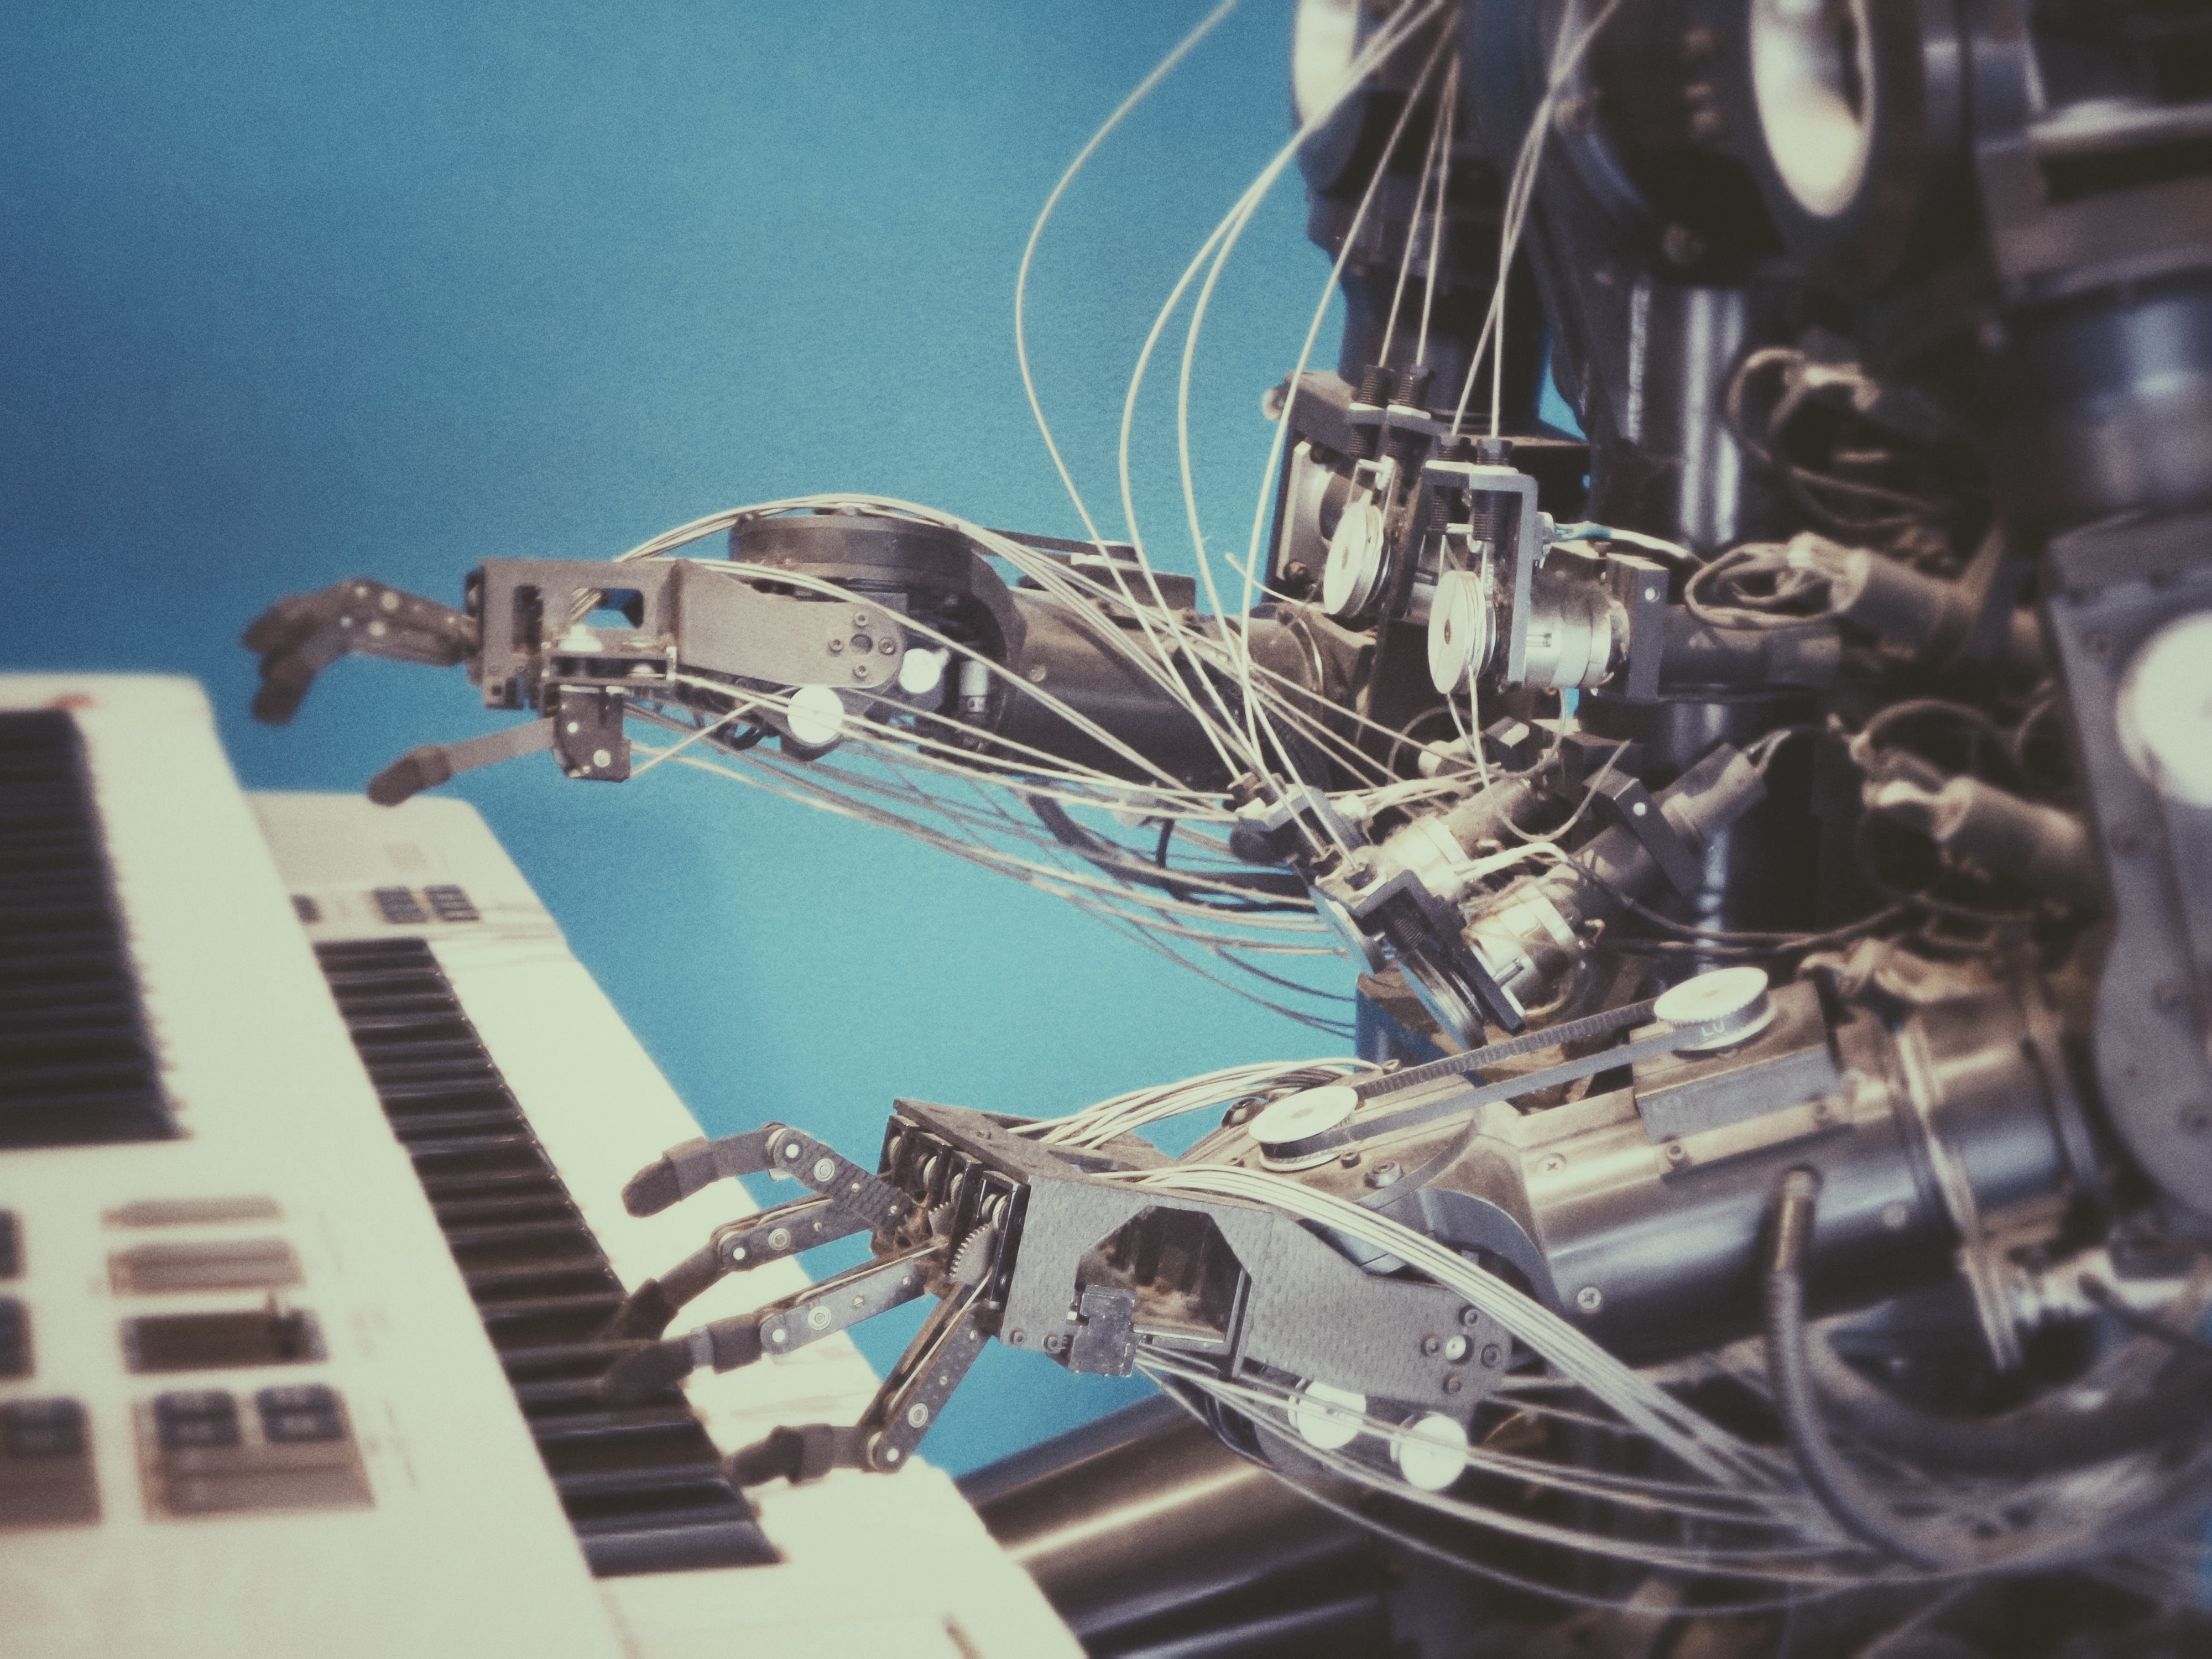 A robot seated at a piano with its hands hovering over the keys